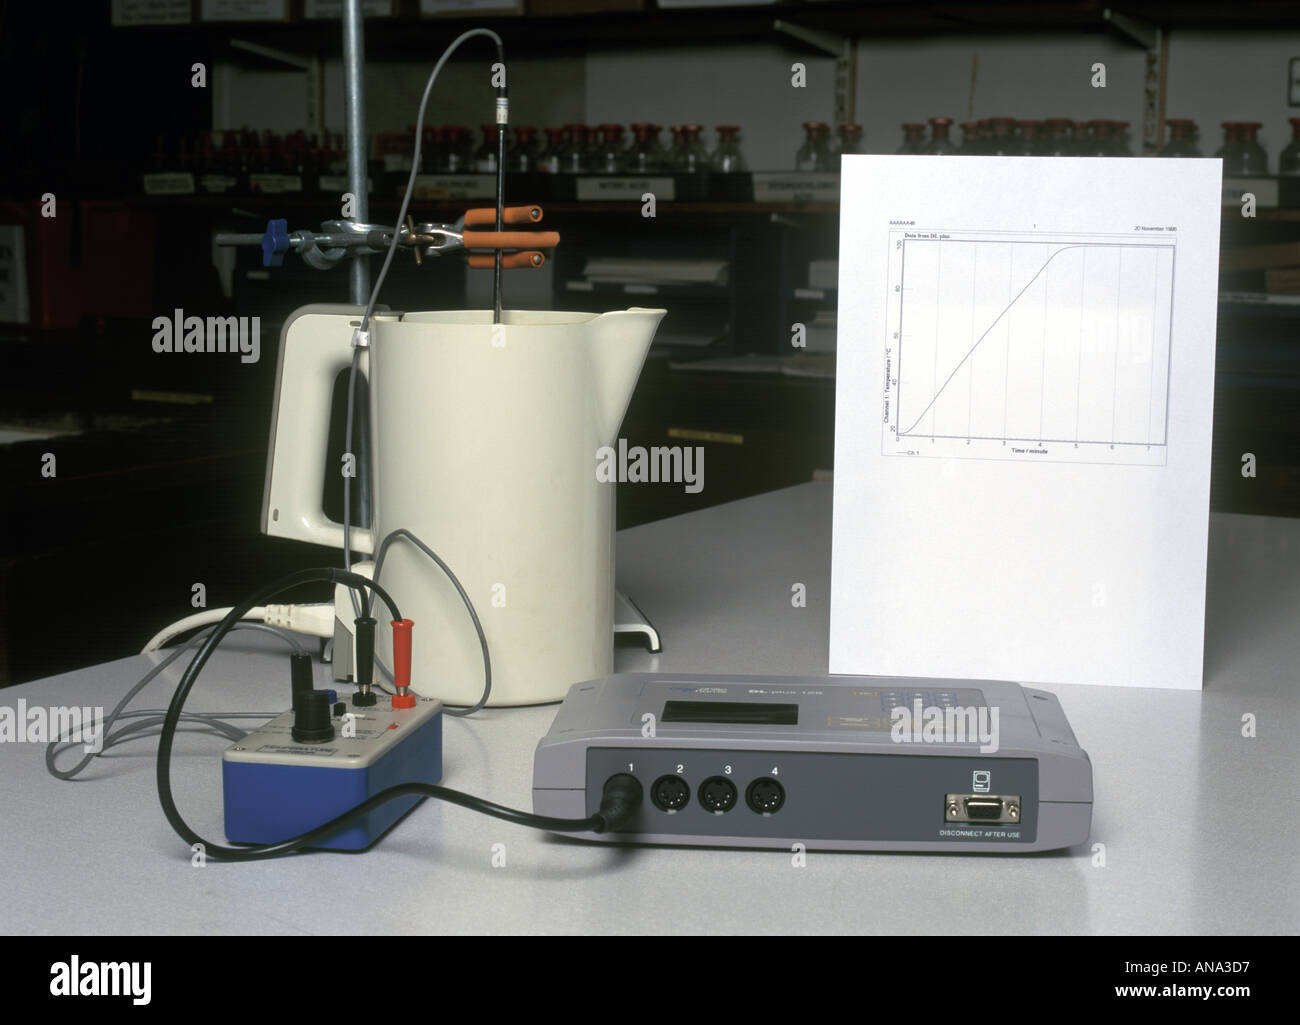 a temperature probe and a datalogger are used to monitor temperature change with time as water in a kettle is heated to boiling - Stock Image